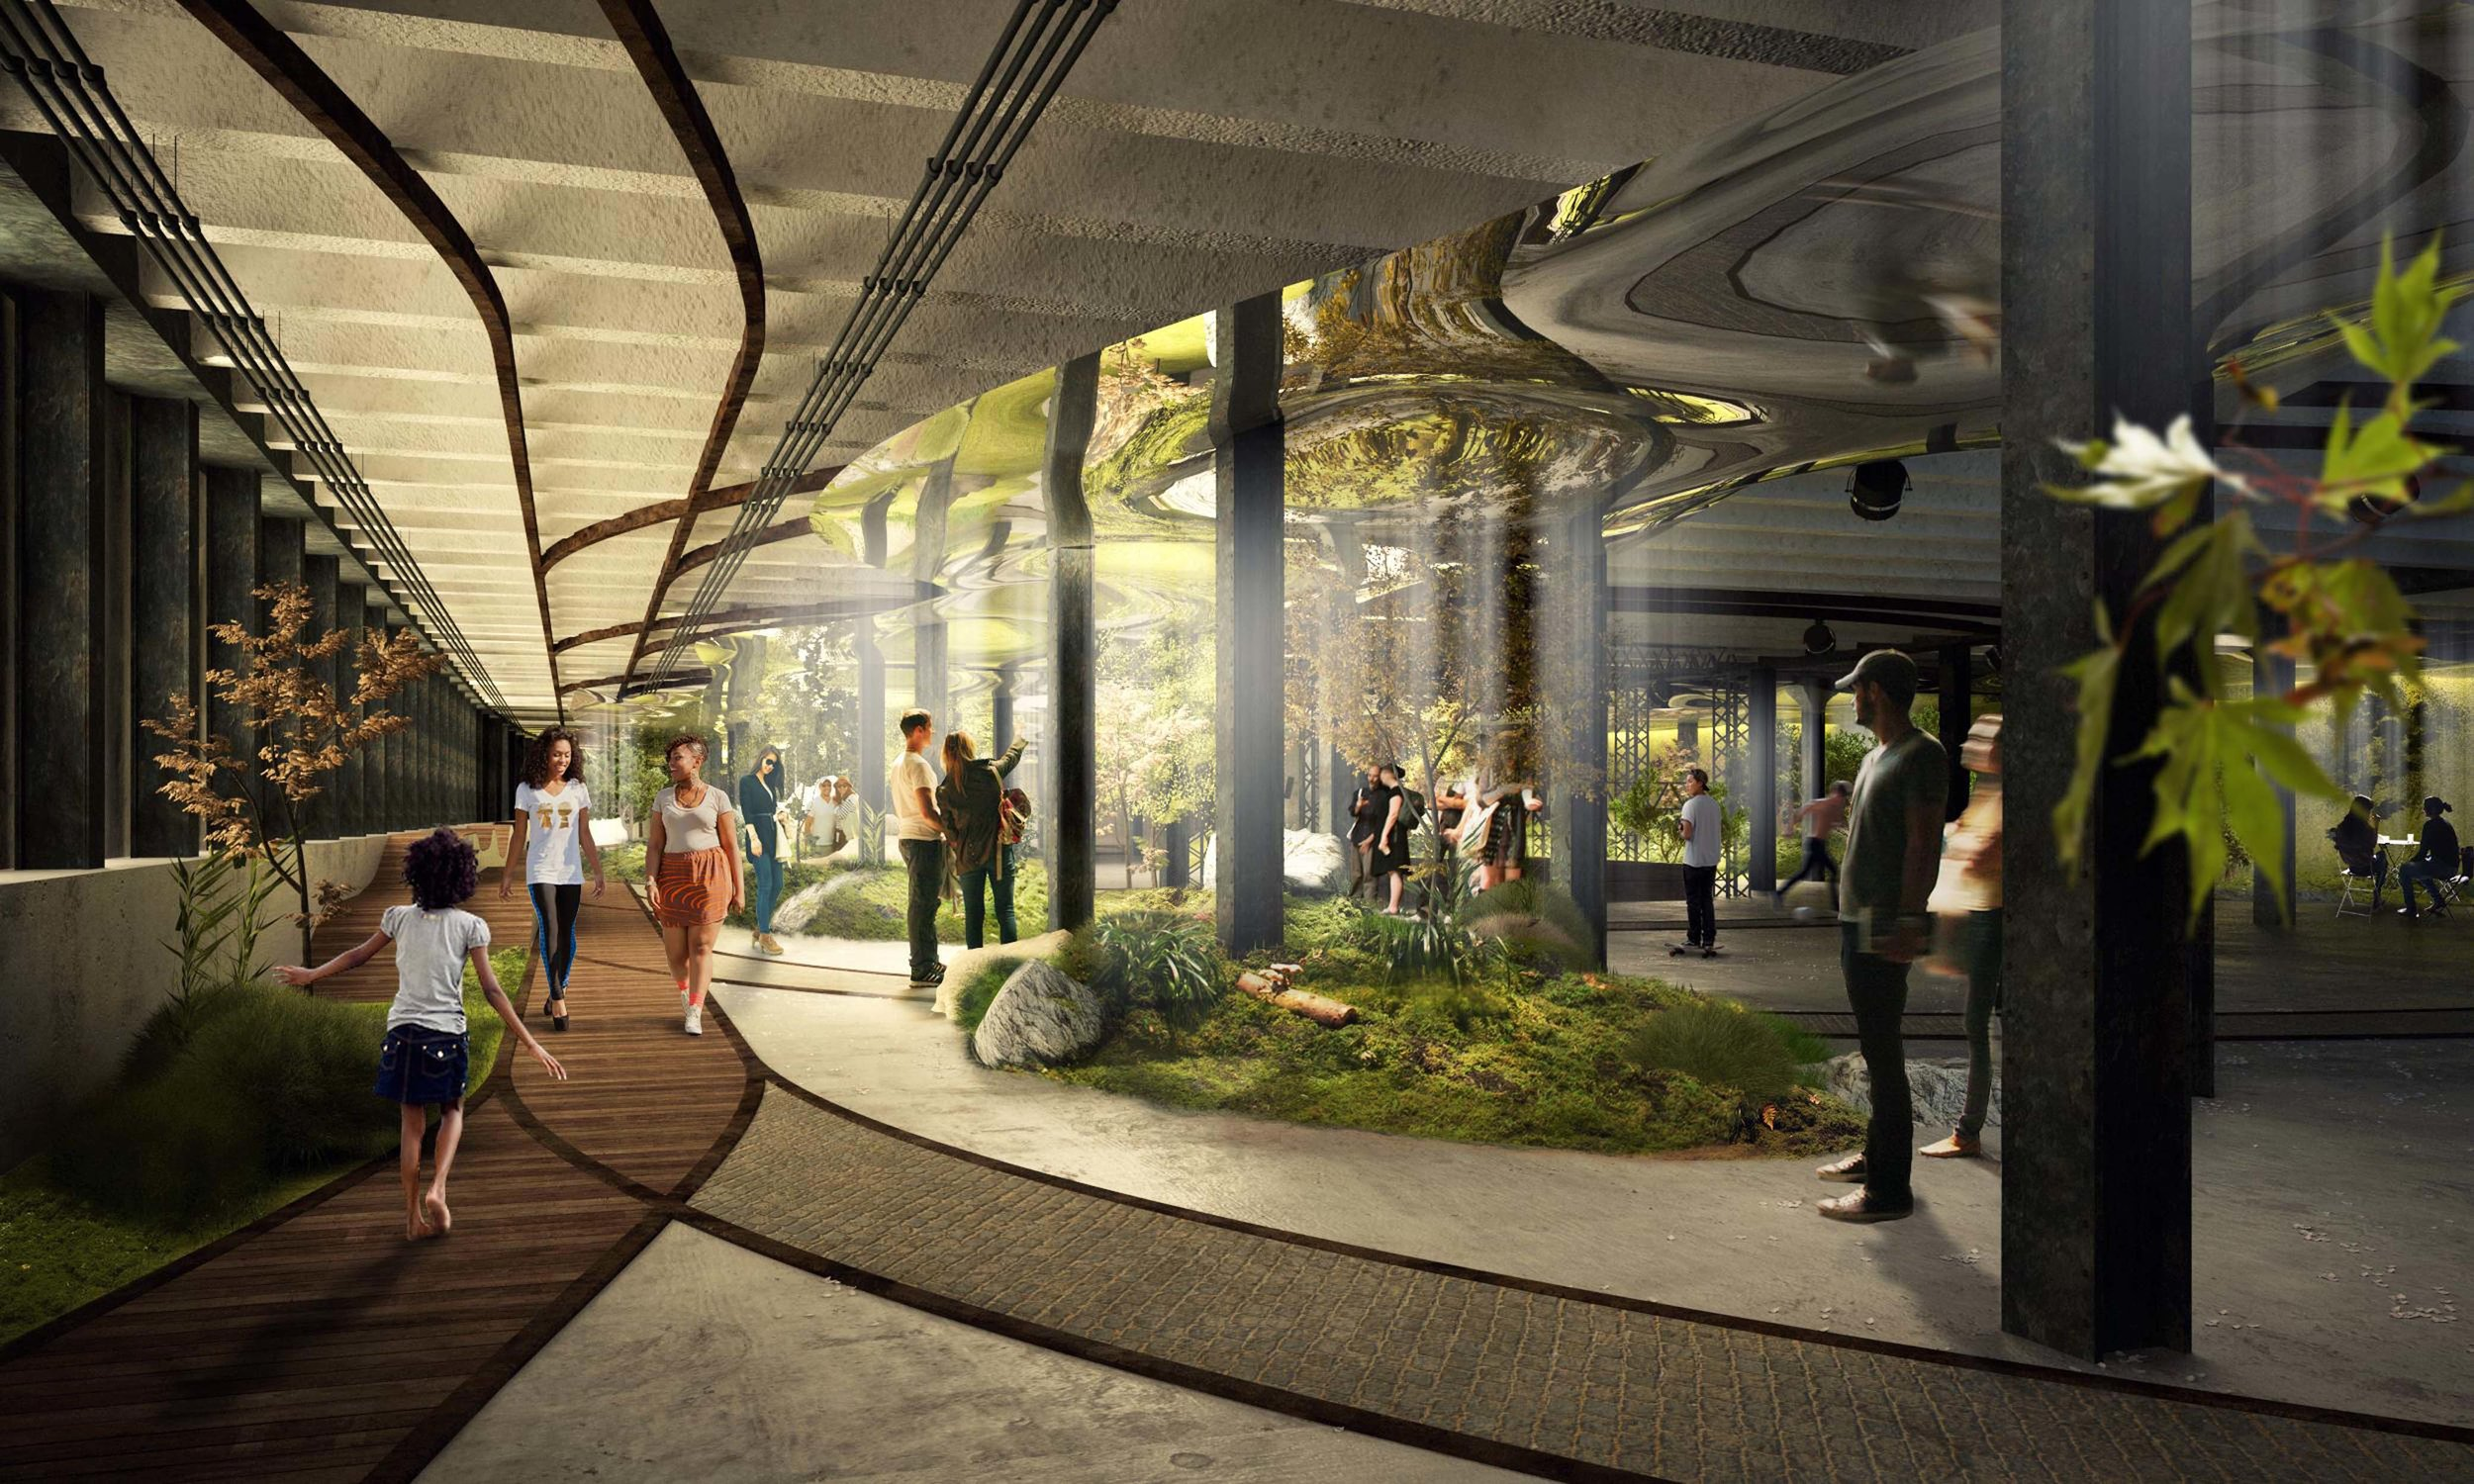 The Lowline is set to open in 2021.